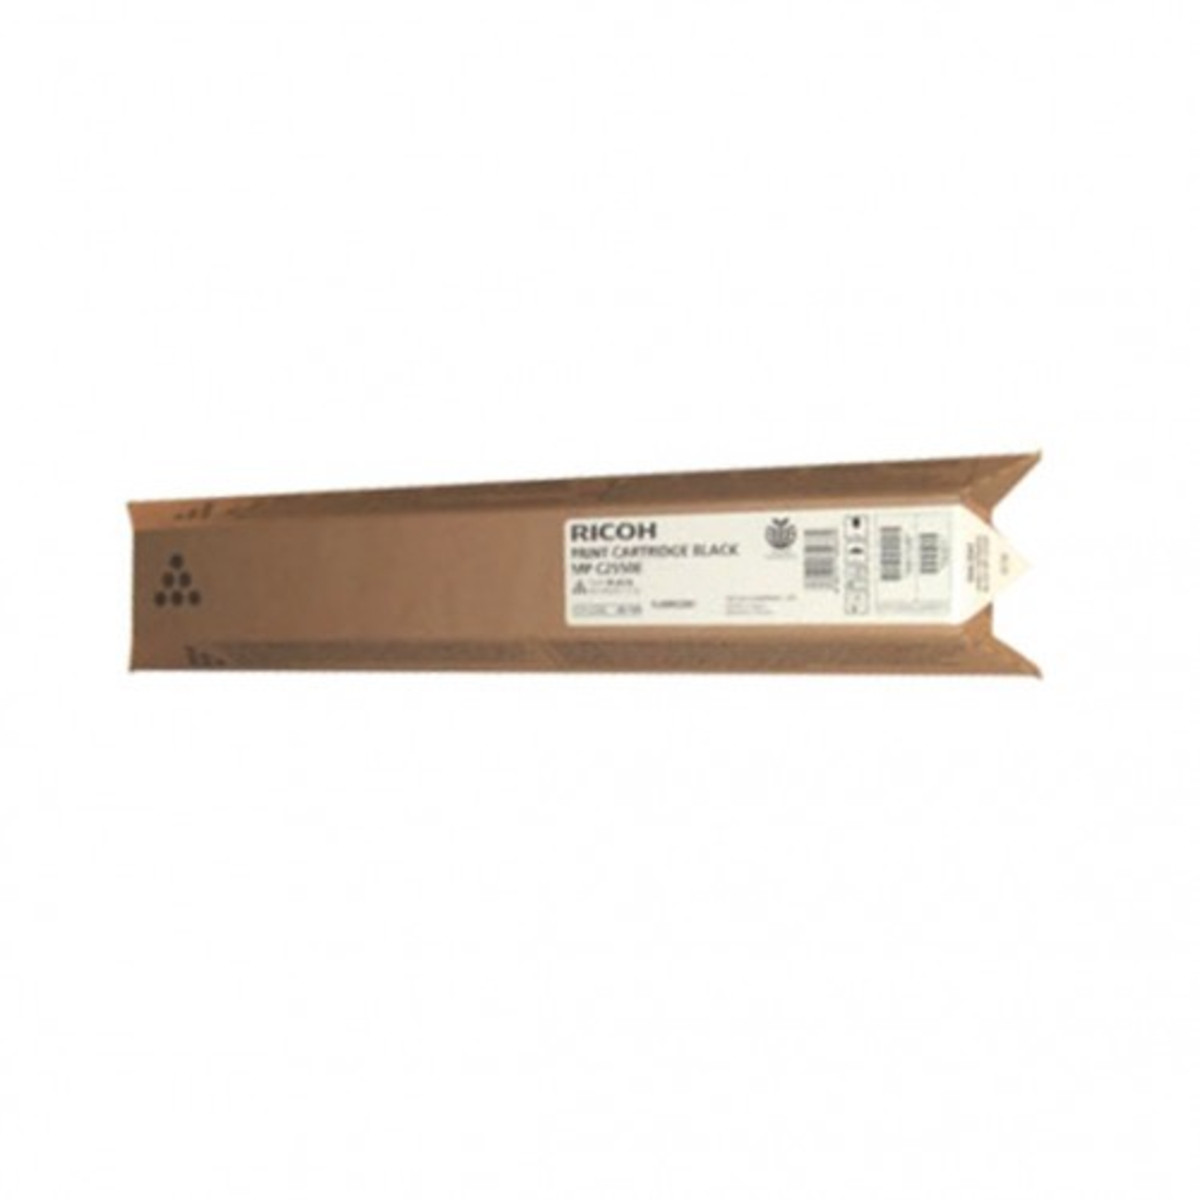 Ricoh 841-232 Black Toner Cartridge